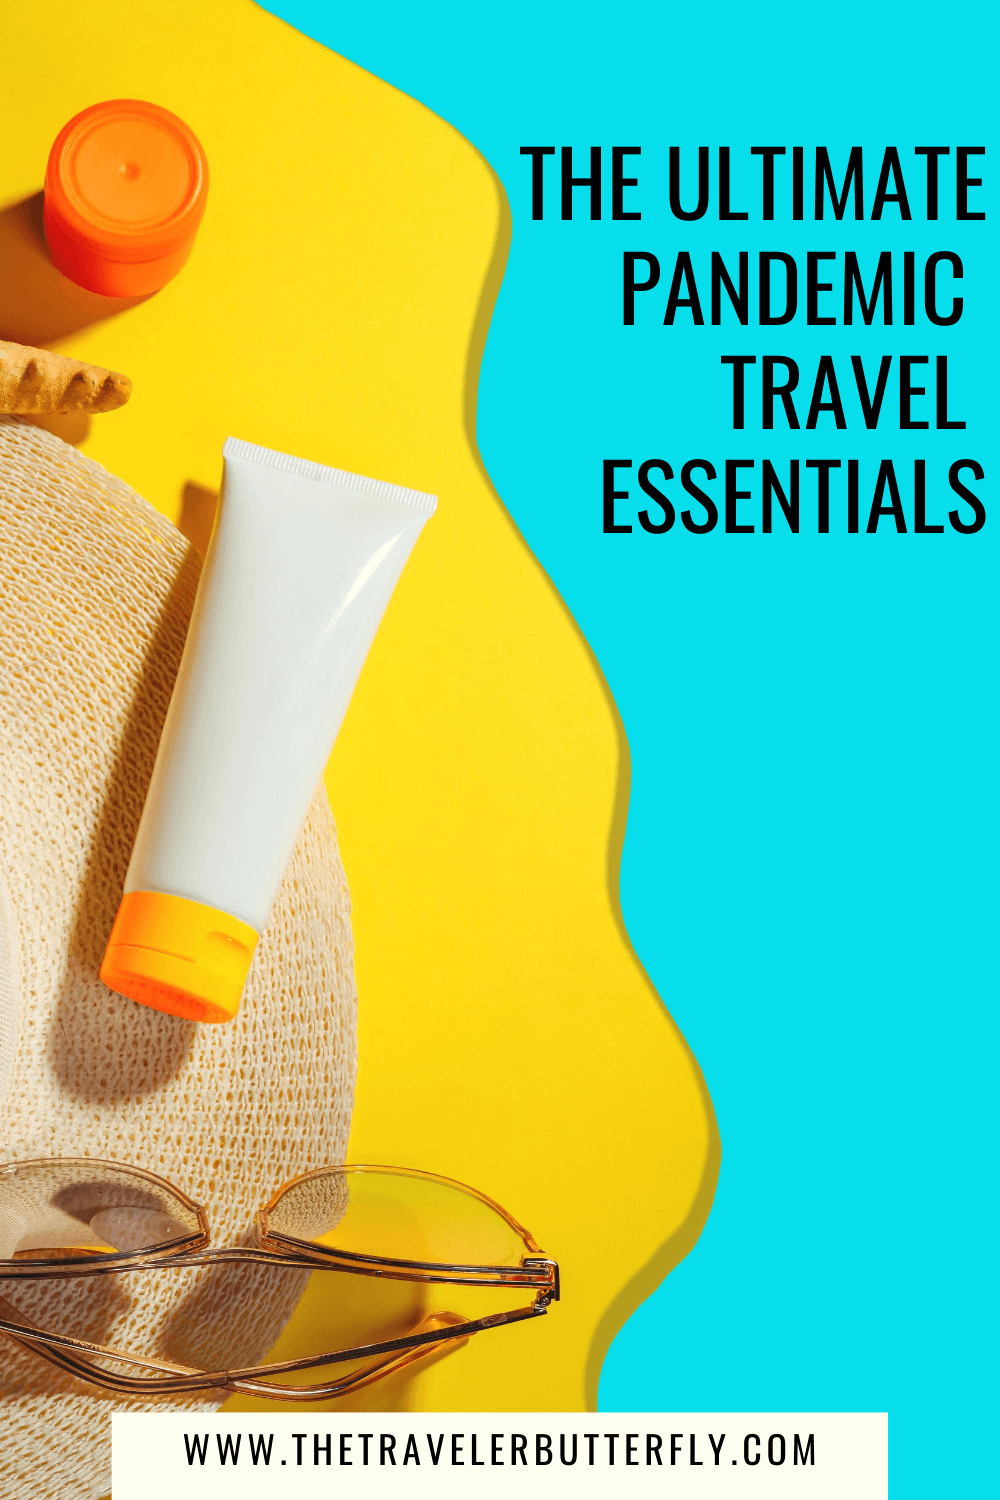 Essential Things To Pack For Travelling In Covid - 19 Pandemic